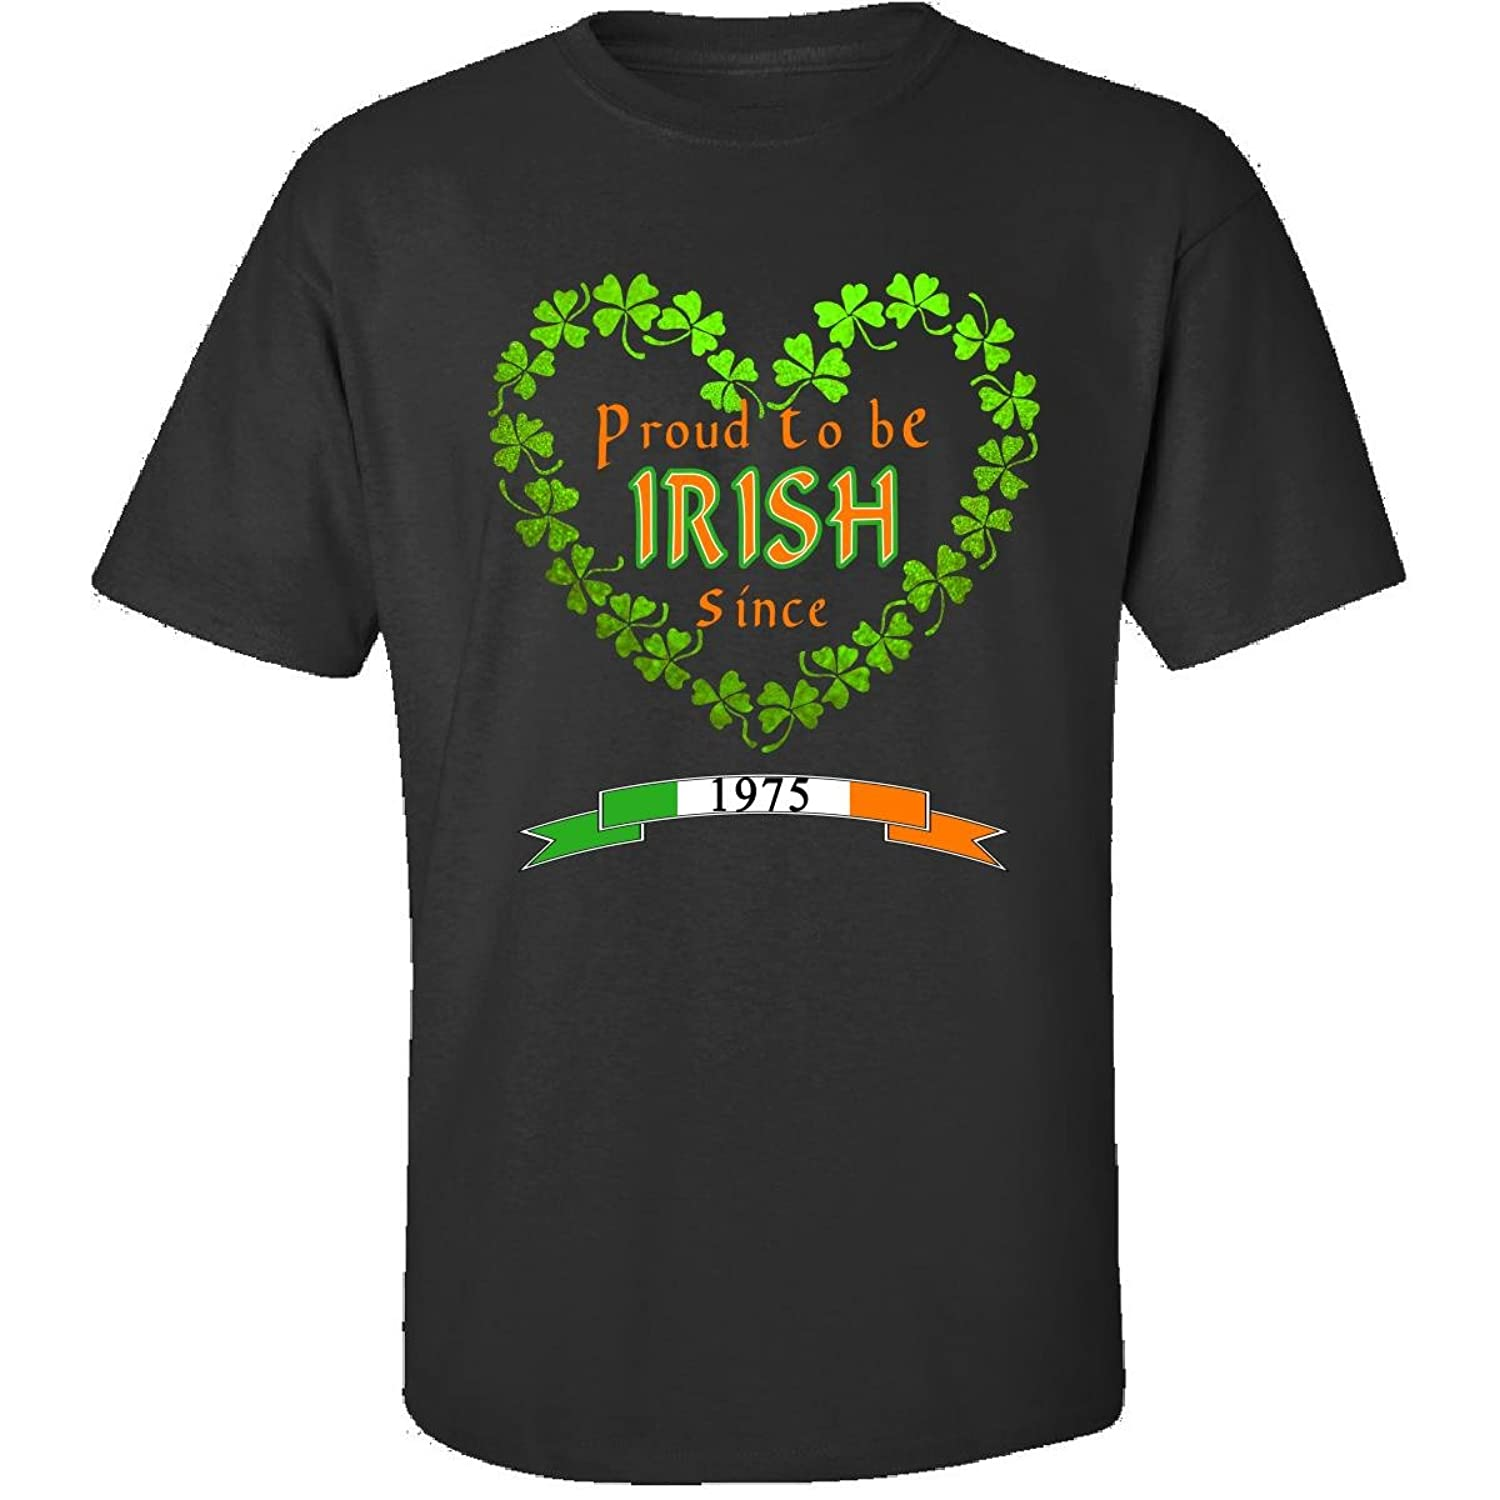 Proud To Be Irish Since 1975 Cool Birthday Gift For Friends - Adult Shirt